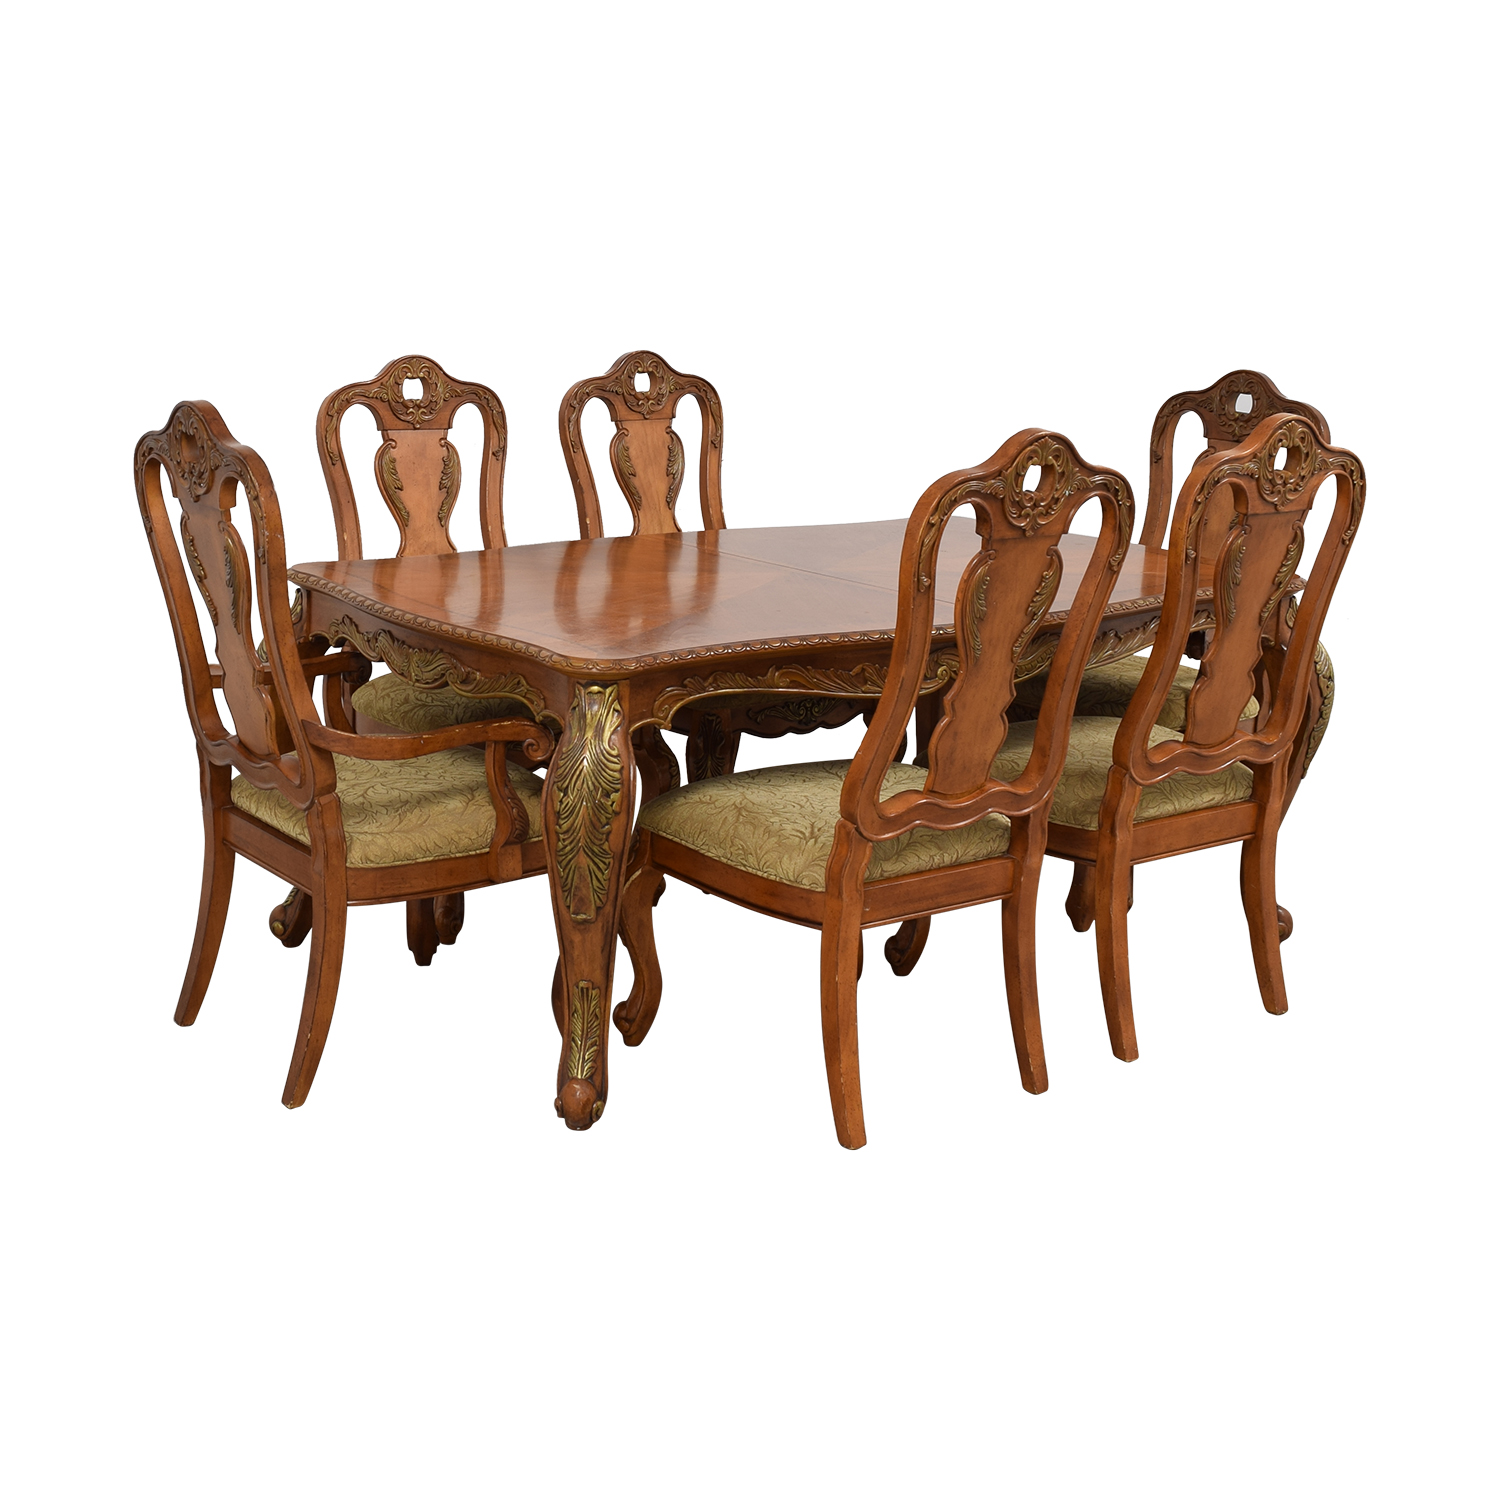 buy Raymour & Flanigan Raymour & Flanigan Extendable Wood Dining Set online